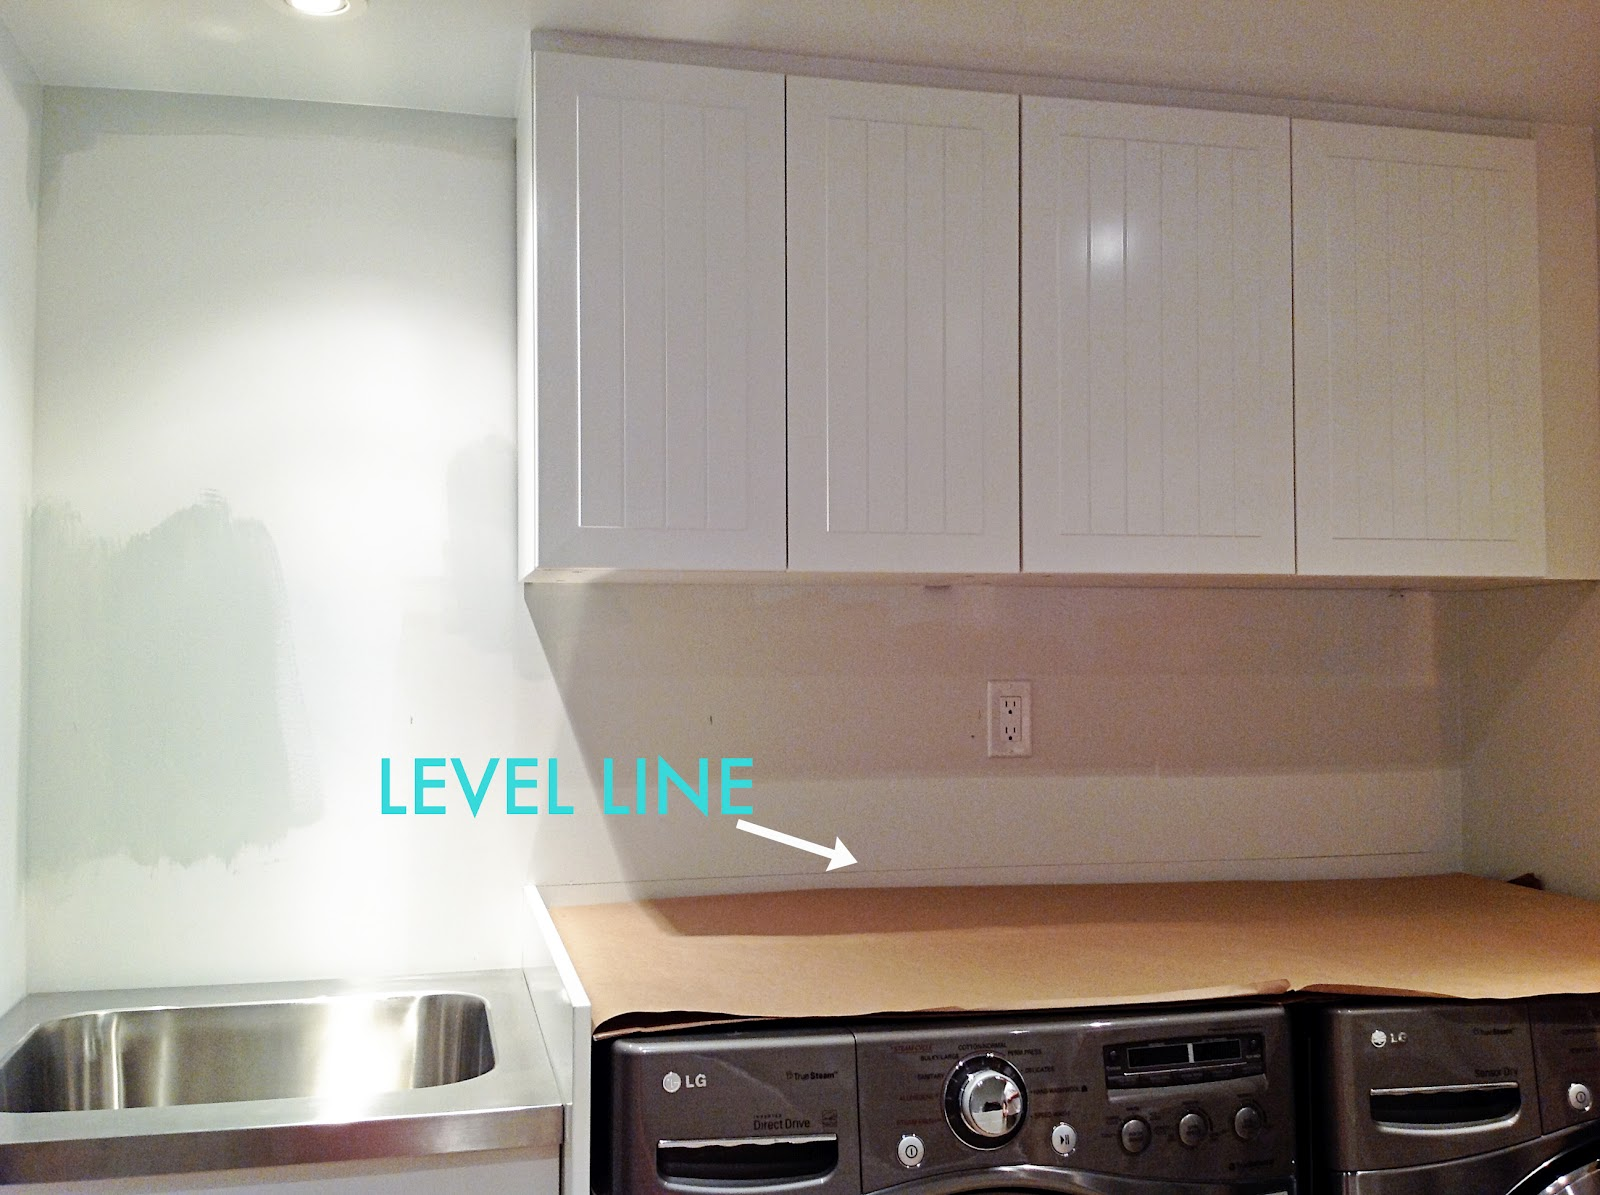 Countertop Support Options : Draw a level line to indicate the underside of your countertop.